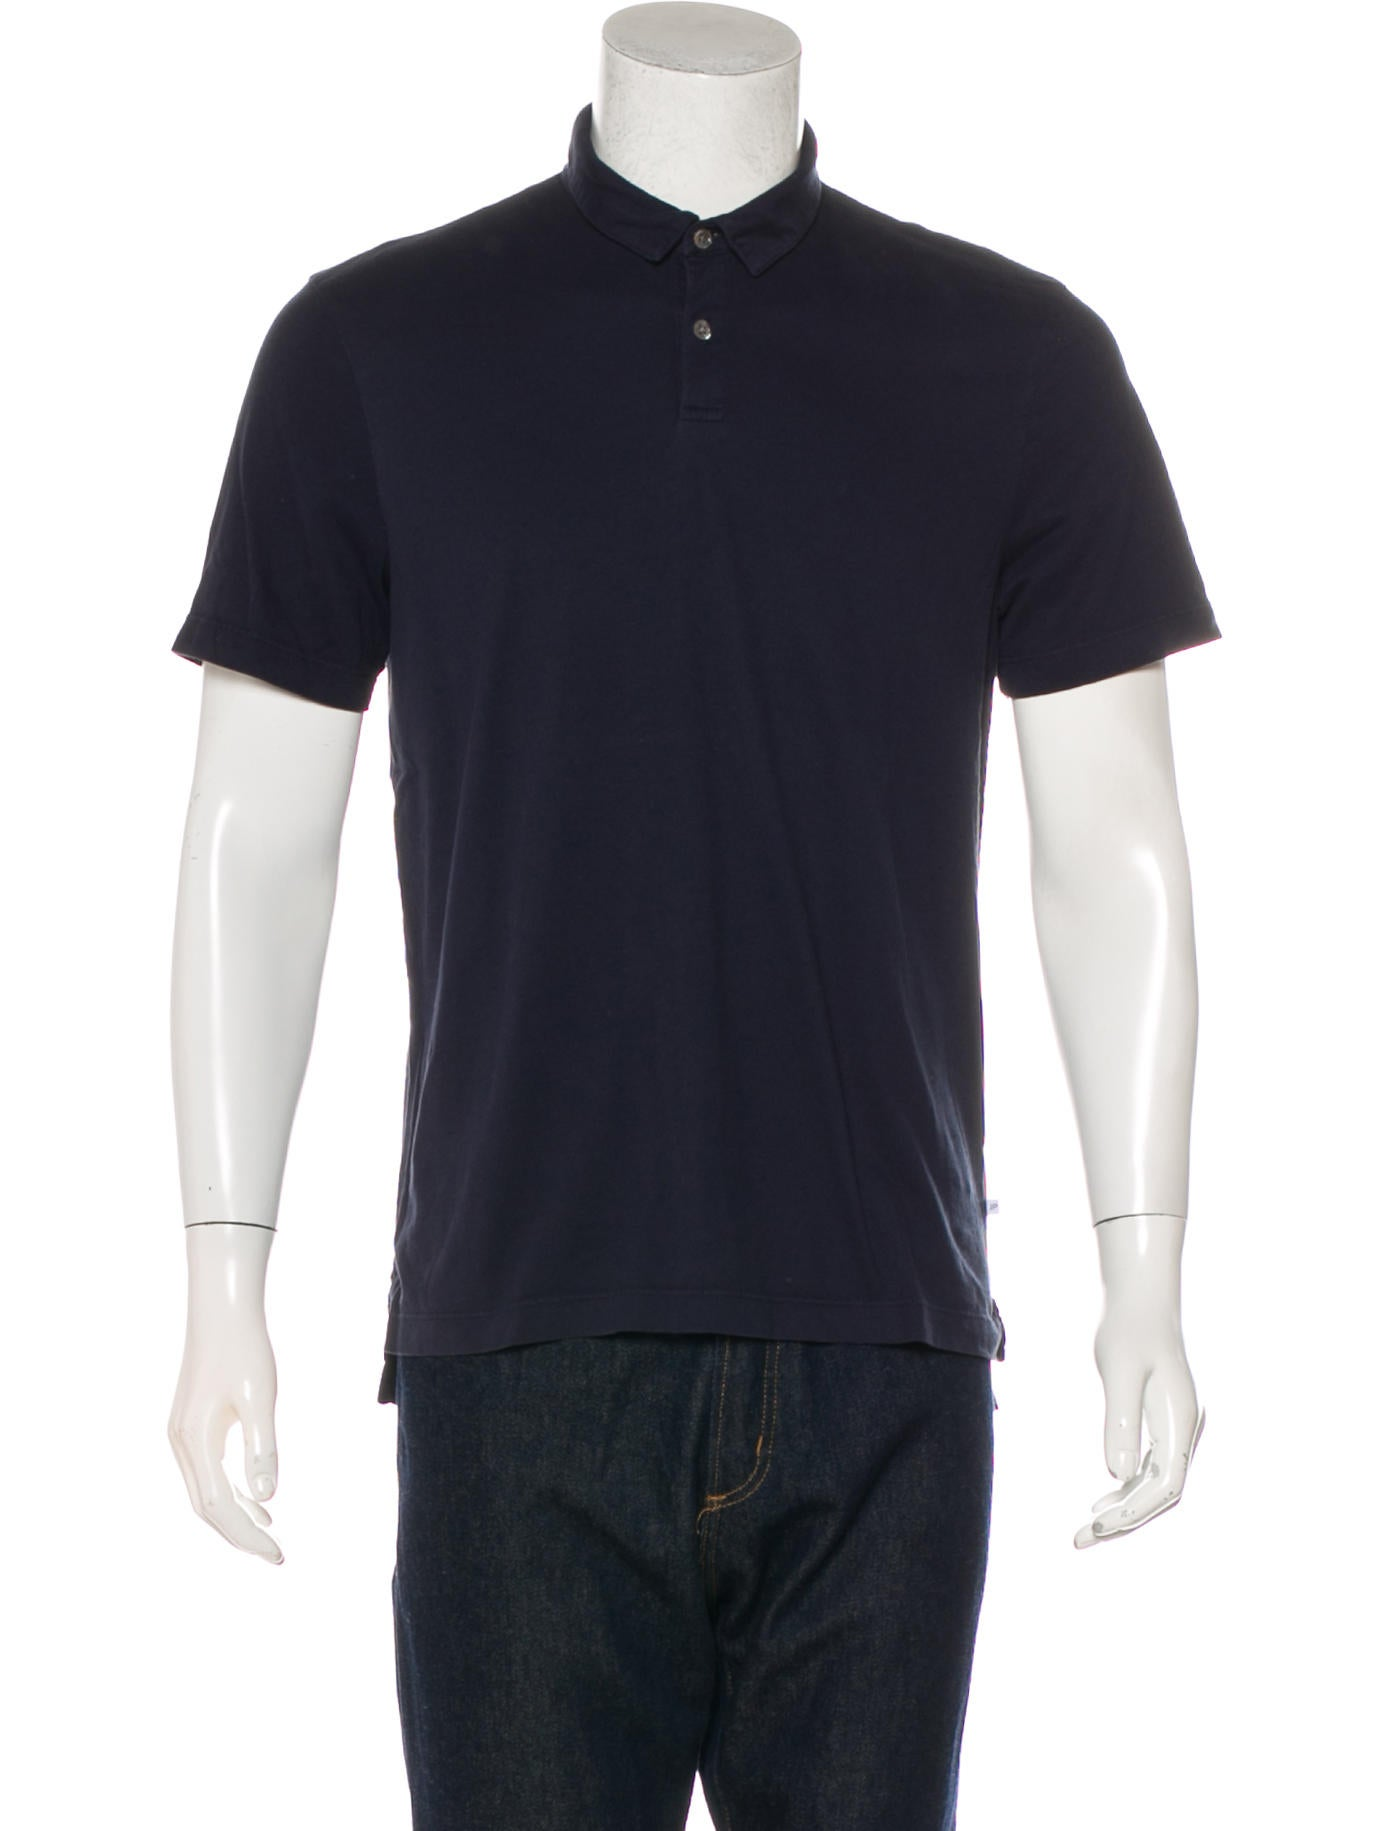 c551a0d73 James Perse Short Sleeve Polo Shirt - Clothing - WJP21585 | The RealReal